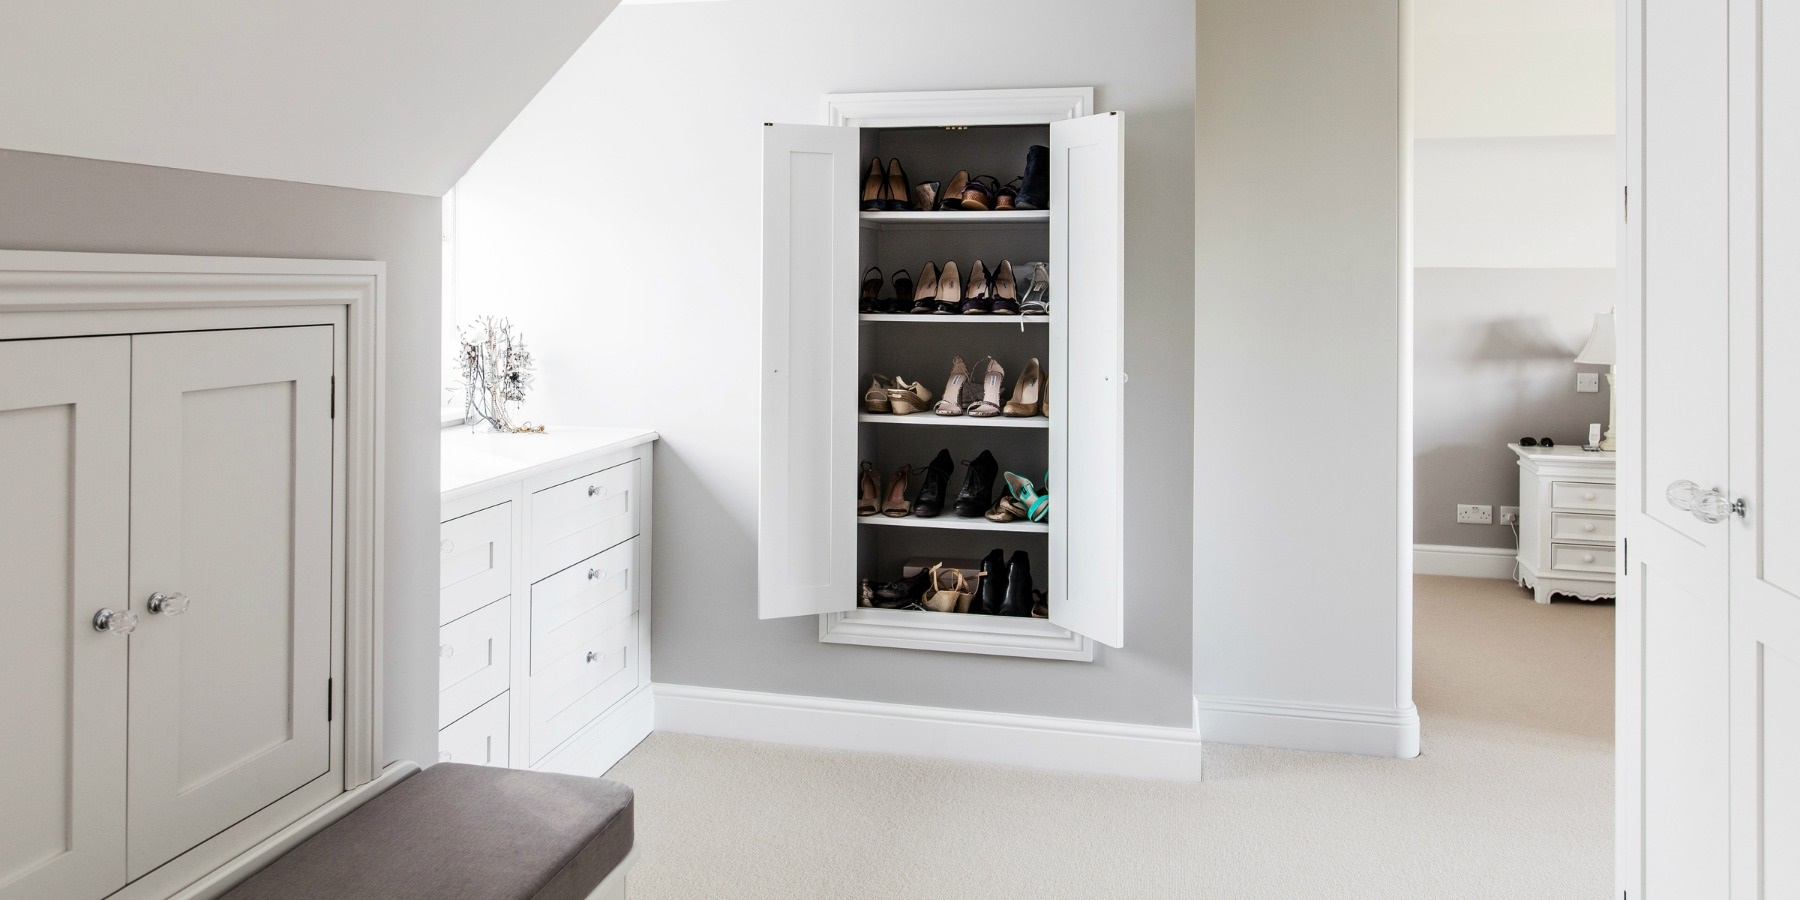 Bespoke Bedroom Storage Solutions - Burlanes handmade bedroom furniture, banquette seating and bespoke shoe storage solutions.